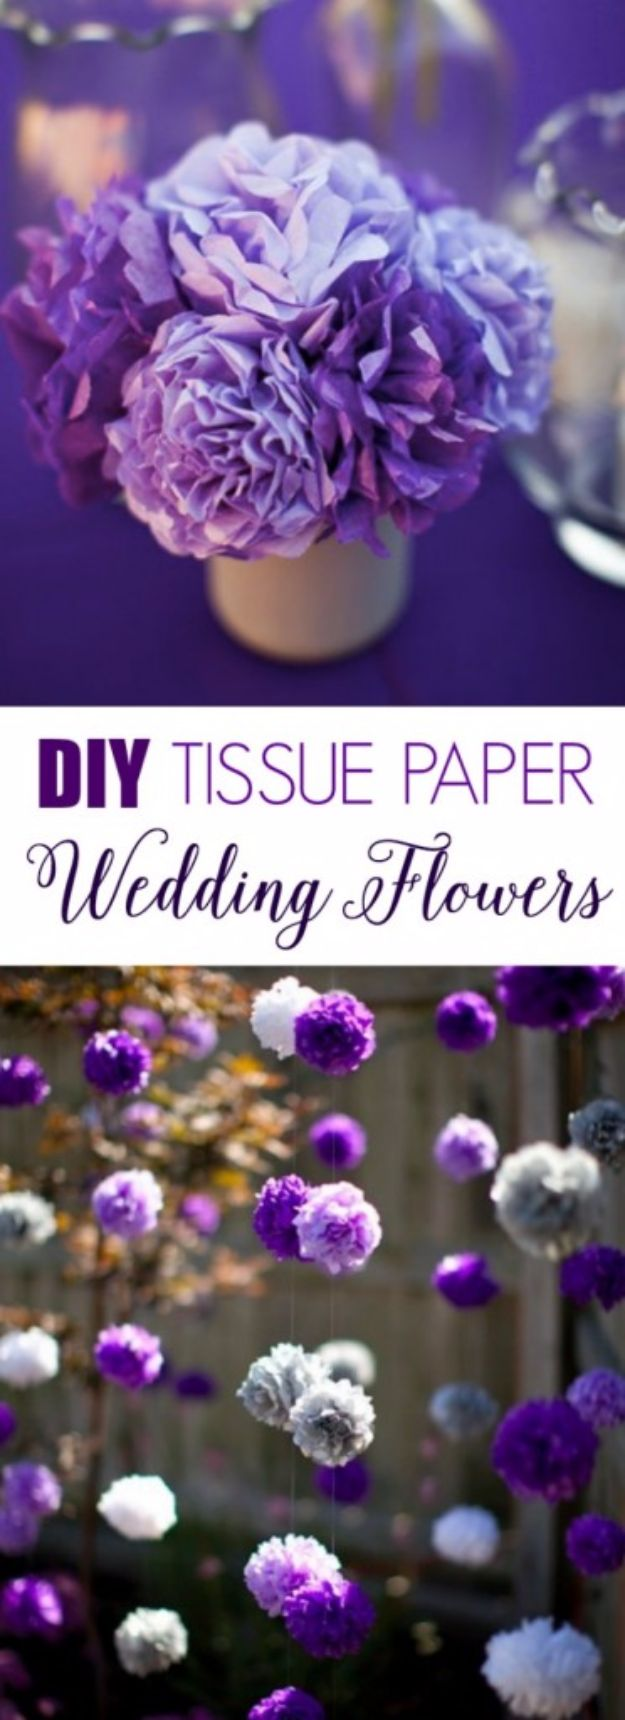 DIY Paper Flowers - DIY Tissue Paper Flowers - How To Make A Paper Flower - Large Wedding Backdrop for Wall Decor - Easy Tissue Paper Flower Tutorial for Kids - Giant Projects for Photo Backdrops - Daisy, Roses, Bouquets, Centerpieces - Cricut Template and Step by Step Tutorial